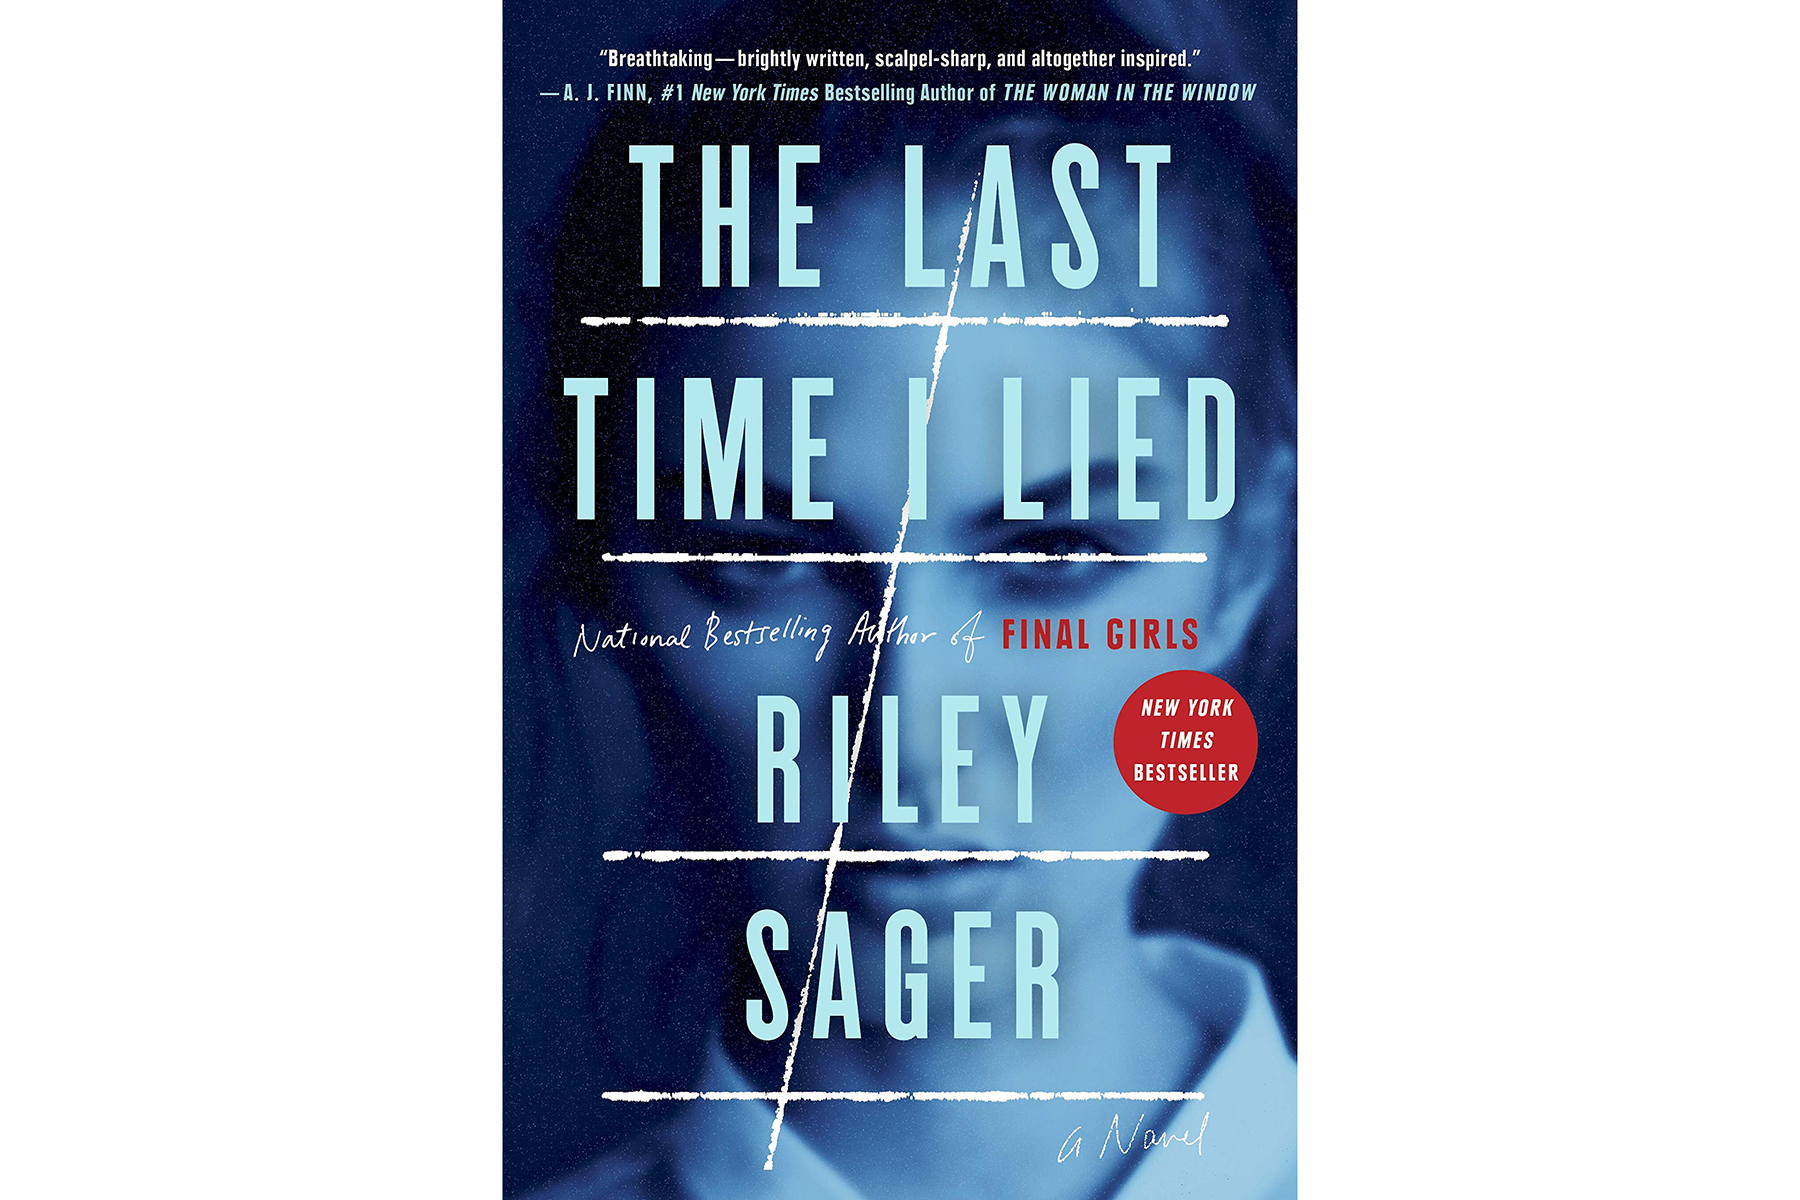 The Cover of The Last Time I Lied by Riley Sager